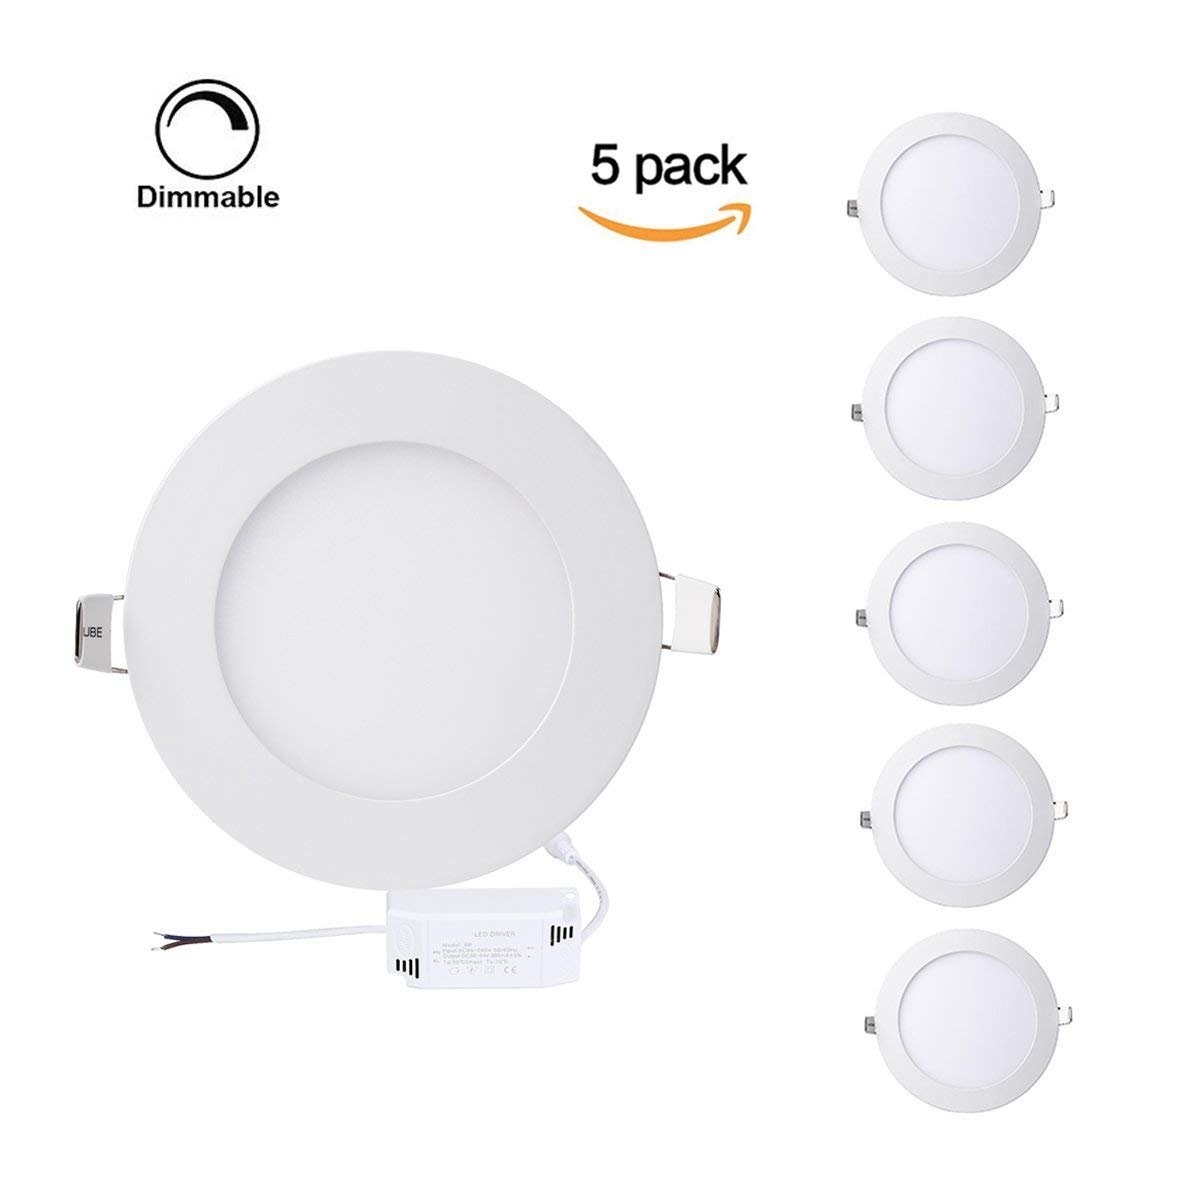 ProGreen Pack of 5 Units 12W Flat LED Panel Light, Dimmable Round Ultrathin LED Recessed Downlight, 960lm, Warm White 3000K, Cut Hole 6.1 Inch, Panel Ceiling Lighting with 110V LED Driver